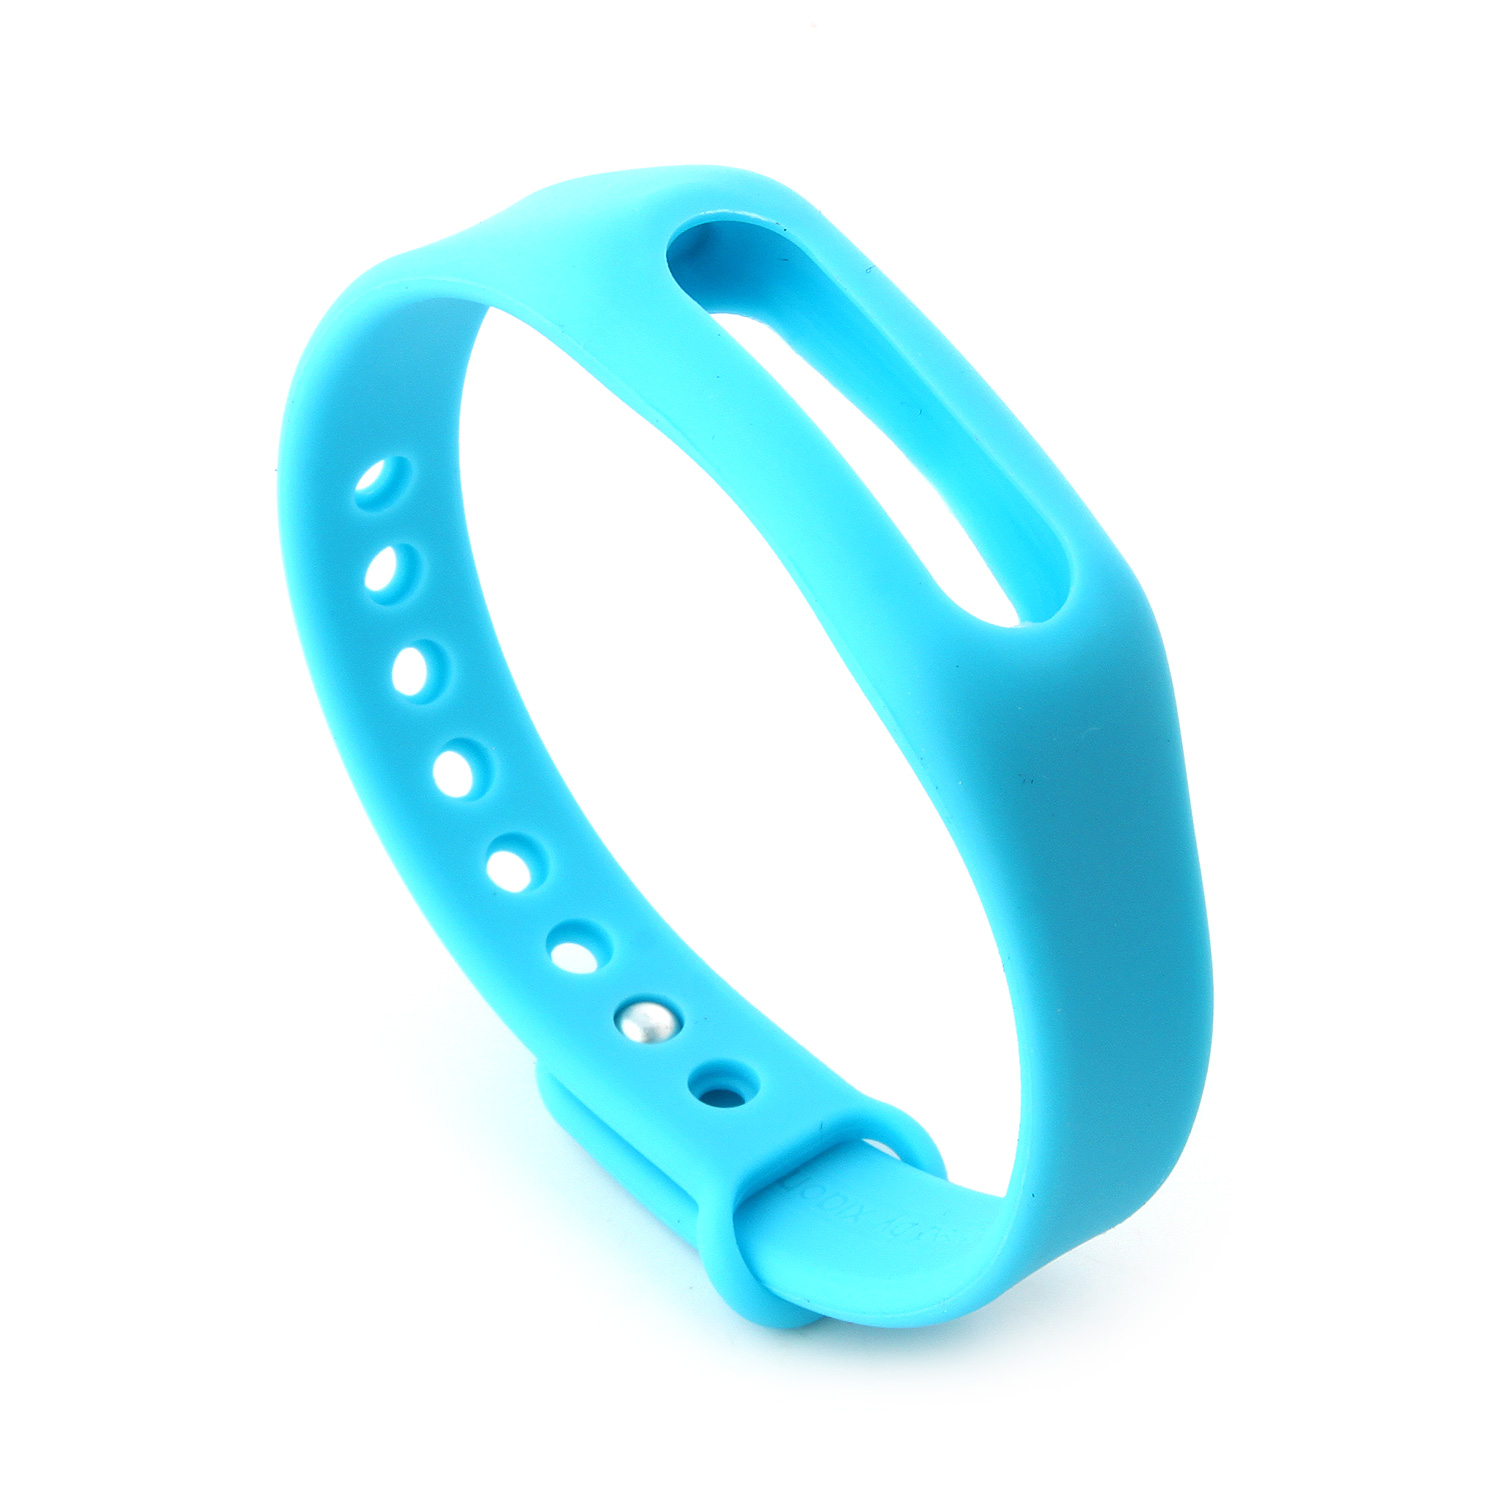 Replacement Wrist Strap Wearable Wrist Band for XIAOMI MI Band Bluetooth Bracelet- Blue